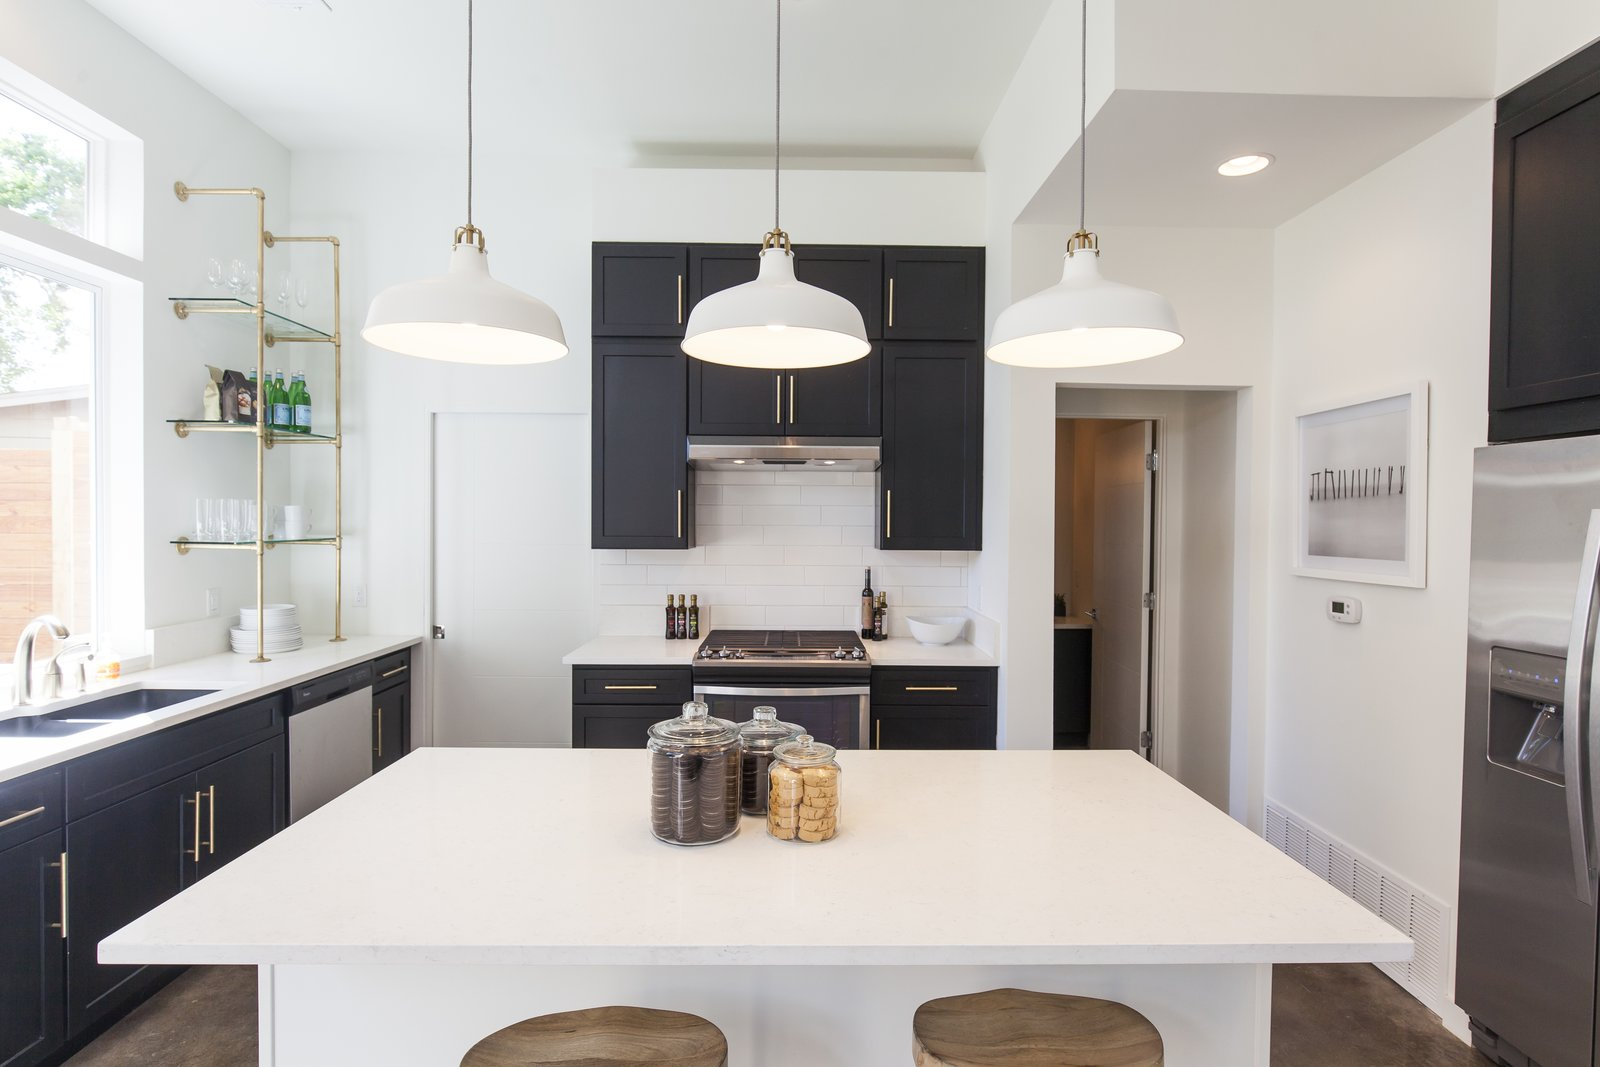 Unit B kitchen with white quartz countertops along counters and island under three white pendant lights.